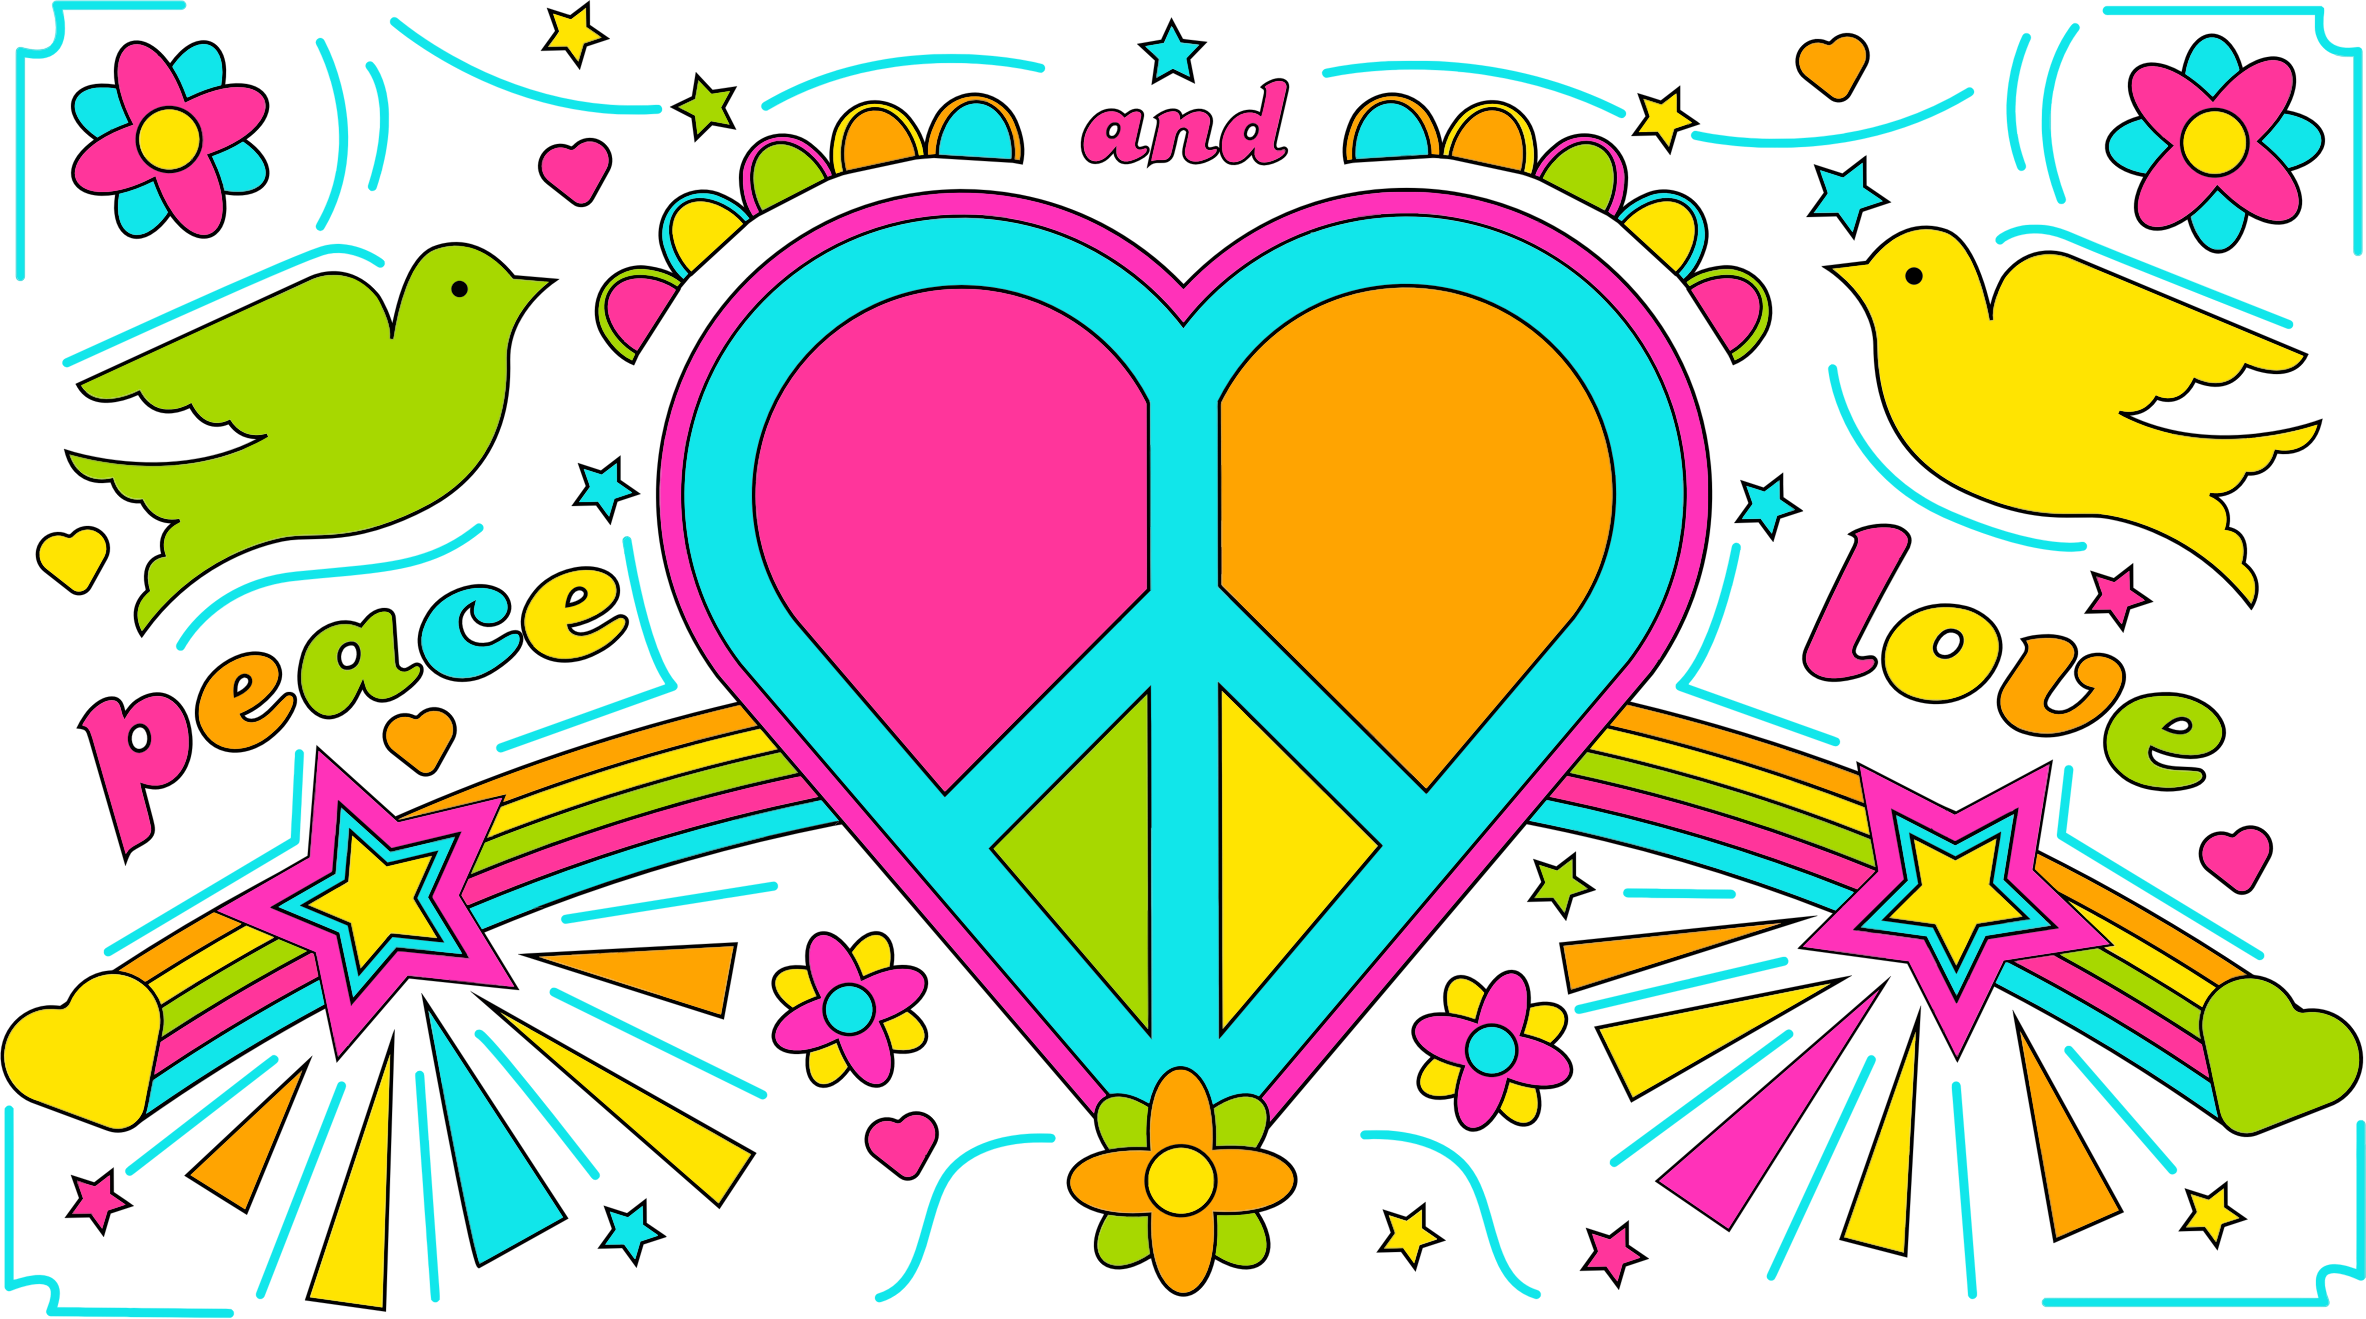 Honesty clipart peace. And love by david